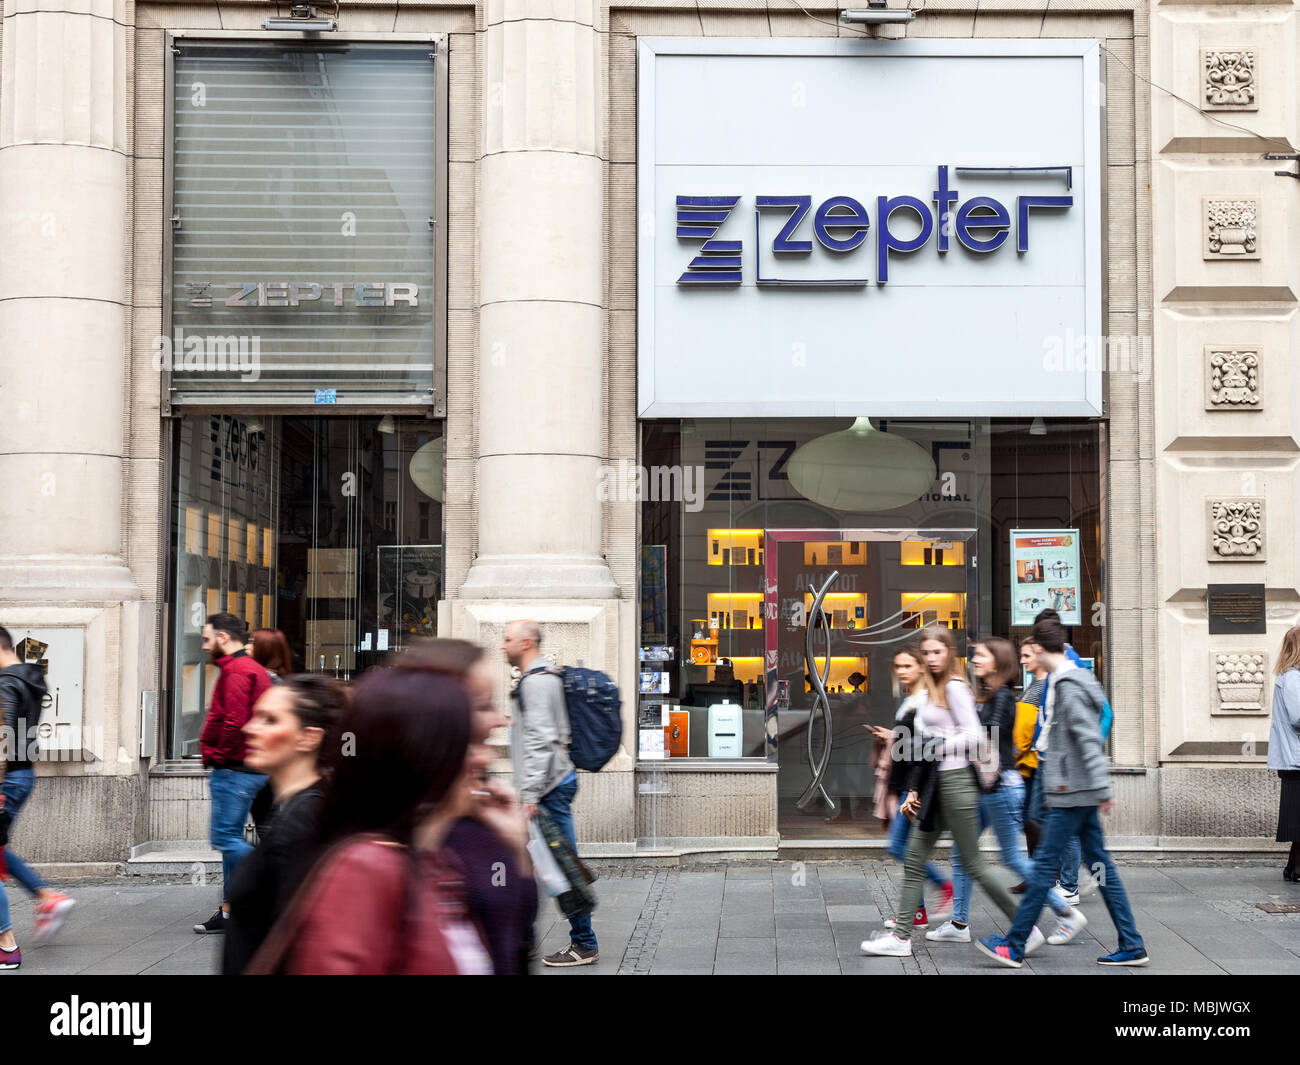 BELGRADE, SERBIA - MARCH 31, 2018: Entrance of a Zepter Shop with its logo and crowd pasisng in front. Founded by a Serb, Zepter International is a gl - Stock Image